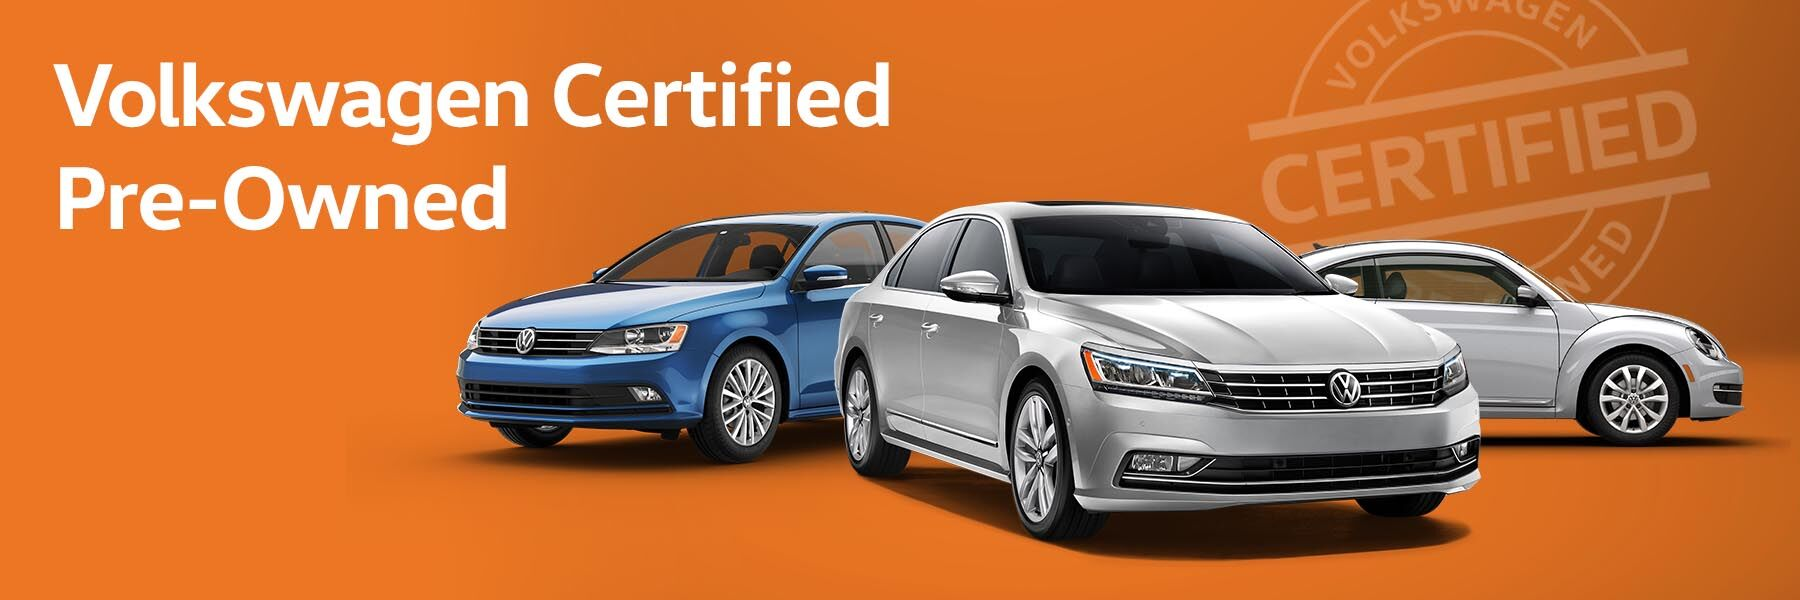 Volkswagen Certified Pre-Owned in North Haven, CT